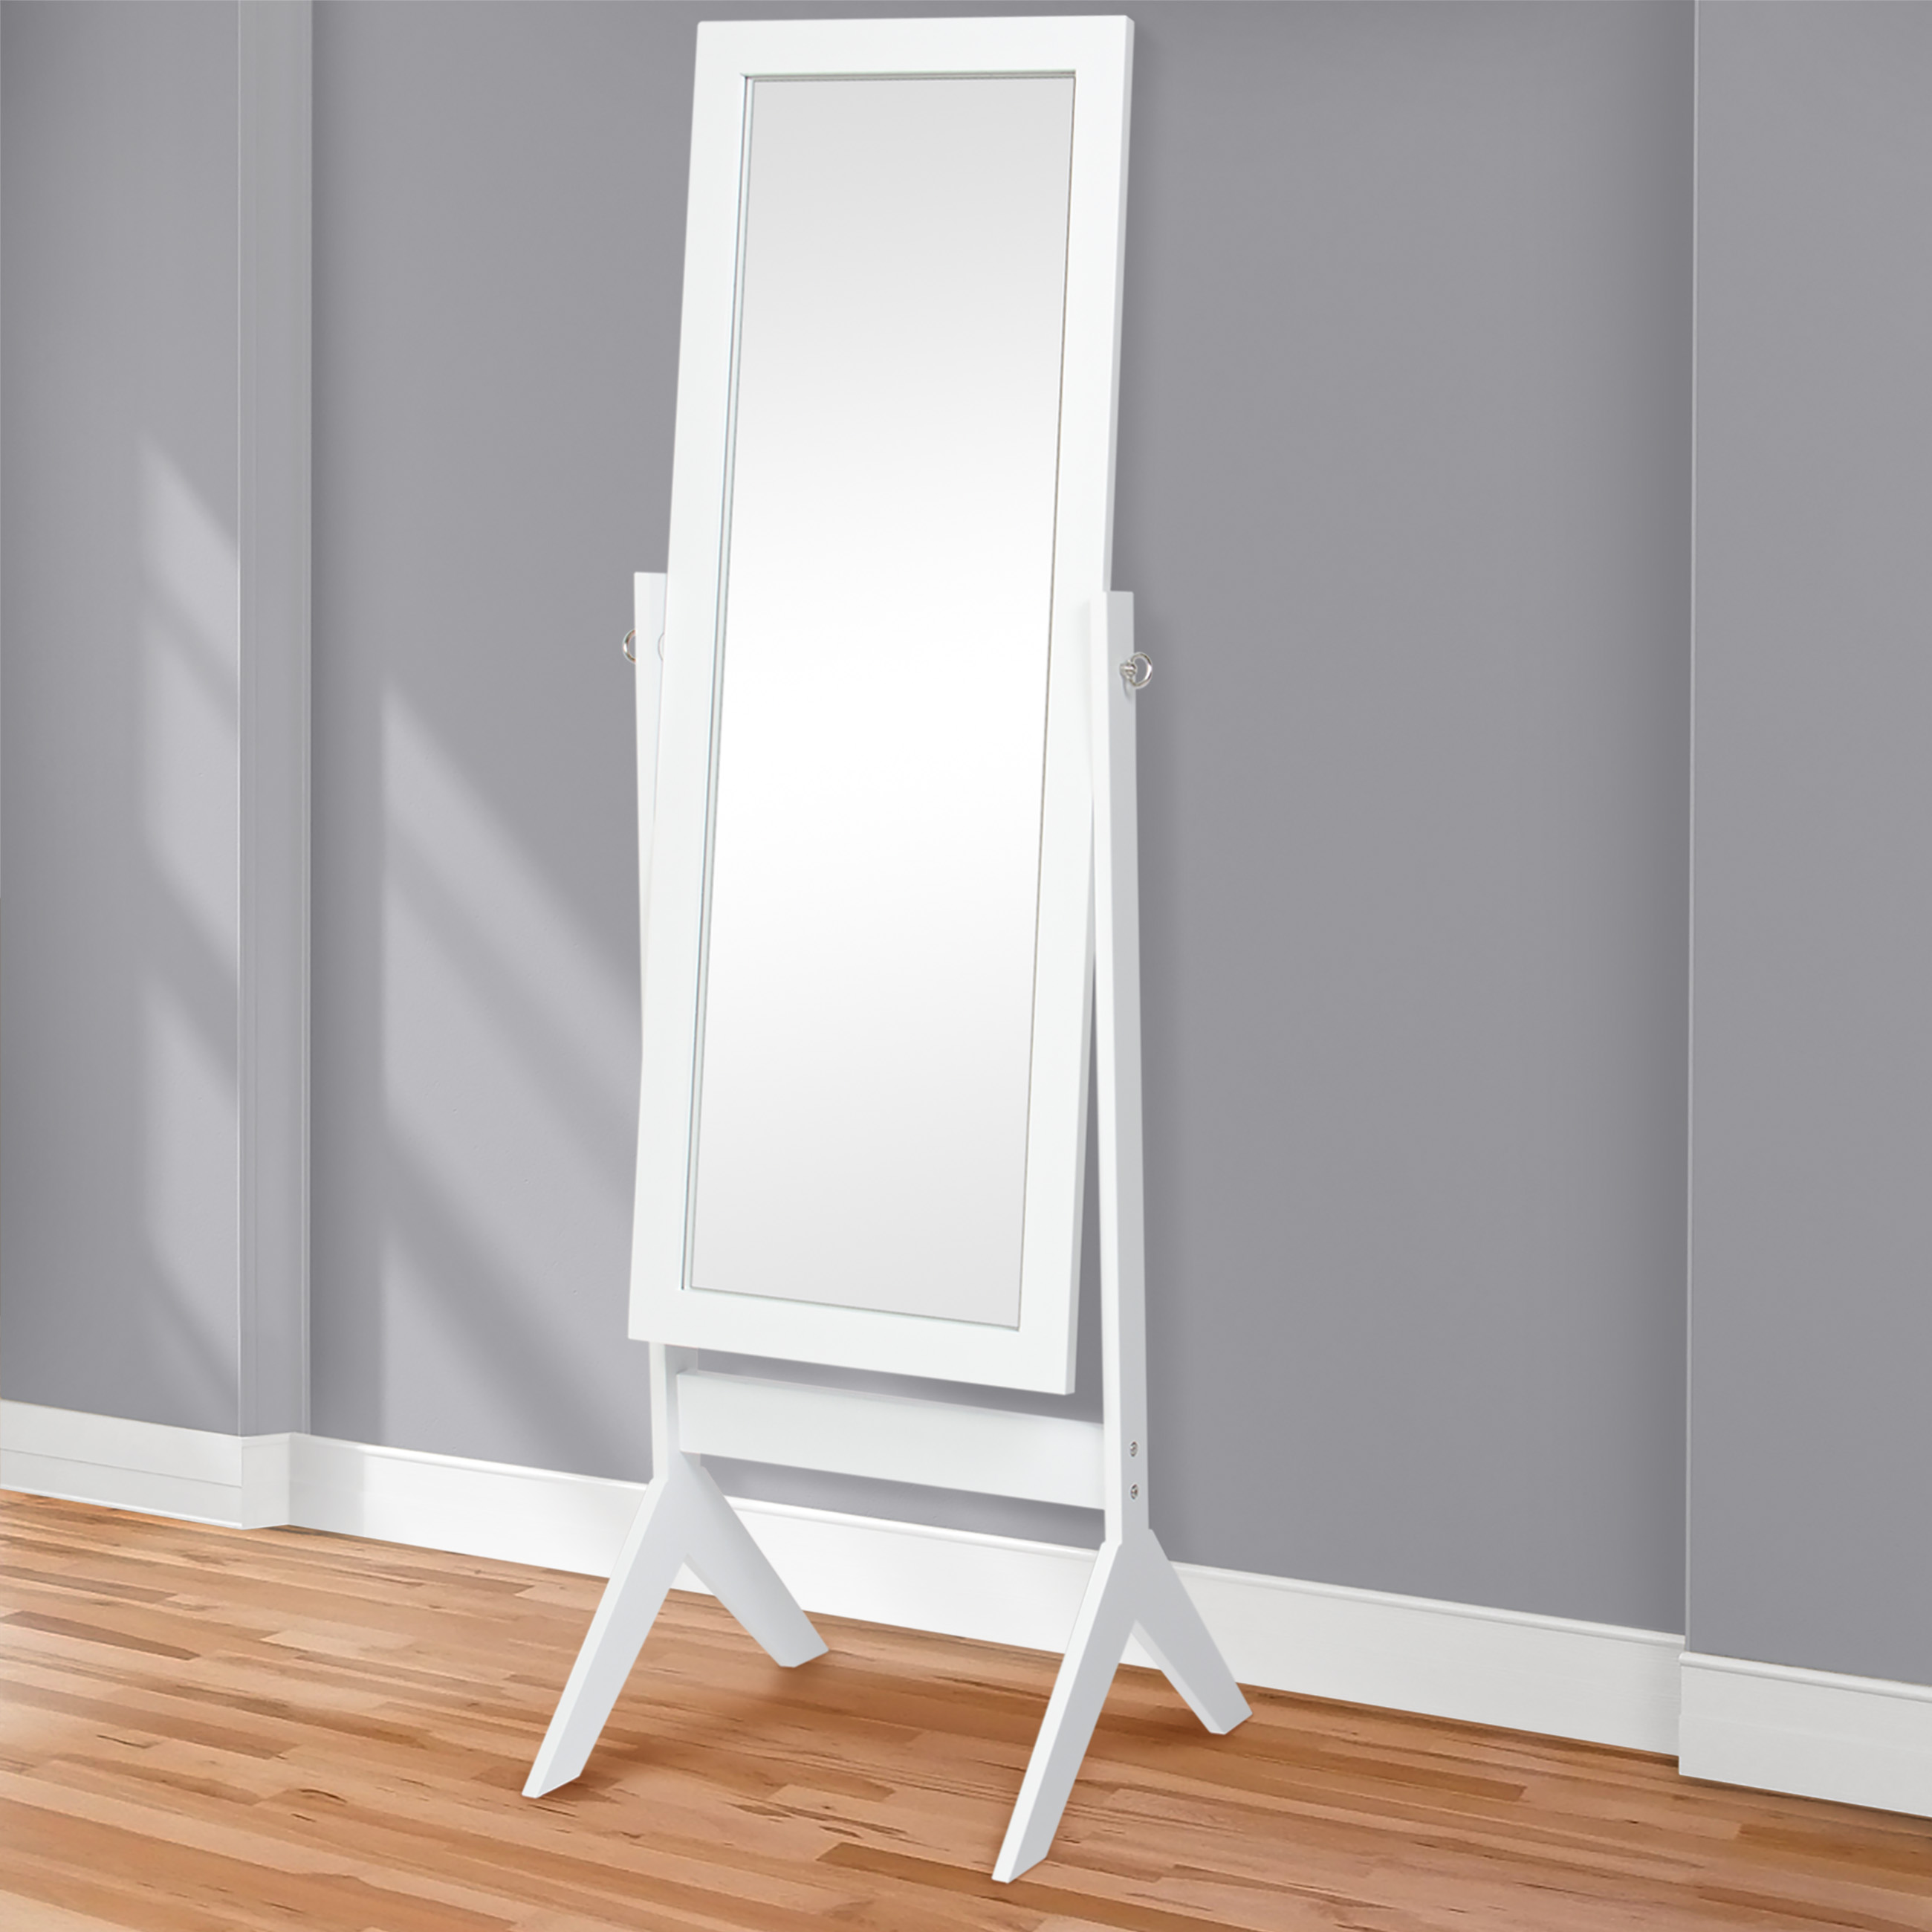 "Best Choice Products 65"" Full-Length Cheval Floor Mirror Bedroom Home Furniture Decor"